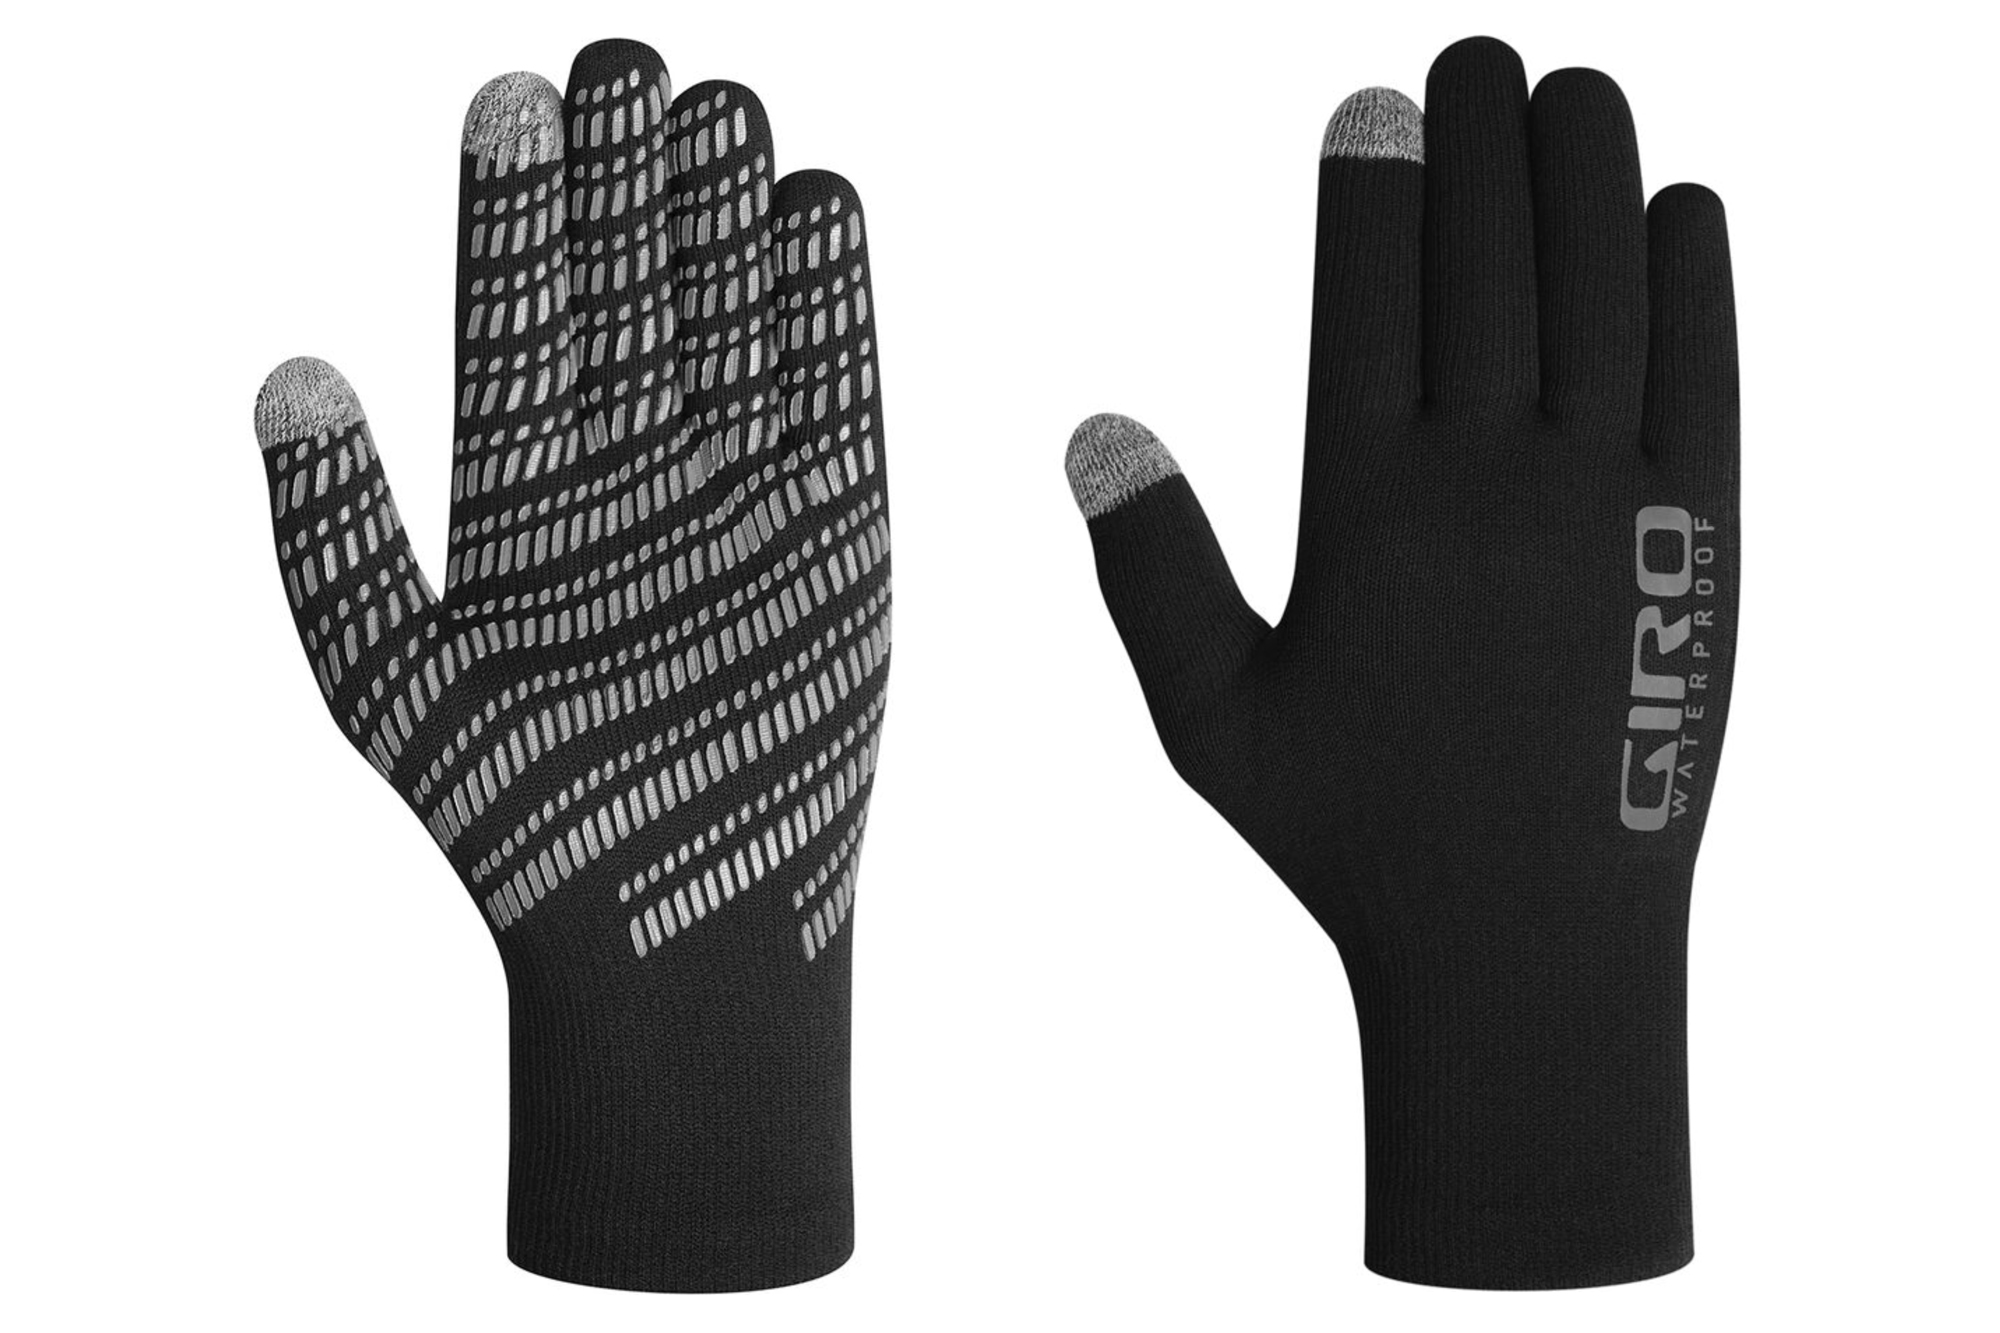 Giro Xnetic H20 Cycling Glove front and back on a white background